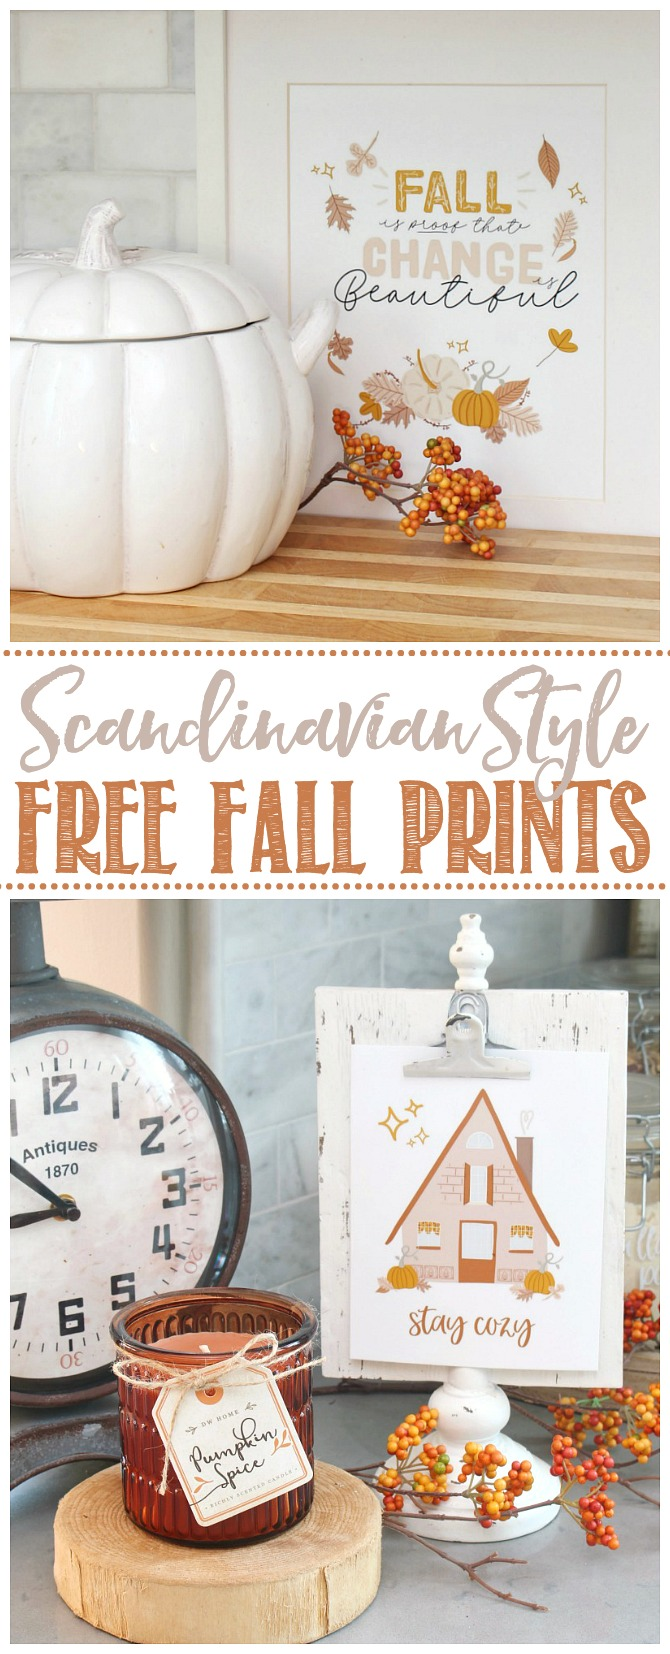 Collection of Scandinavian style free fall printables in muted fall colors.